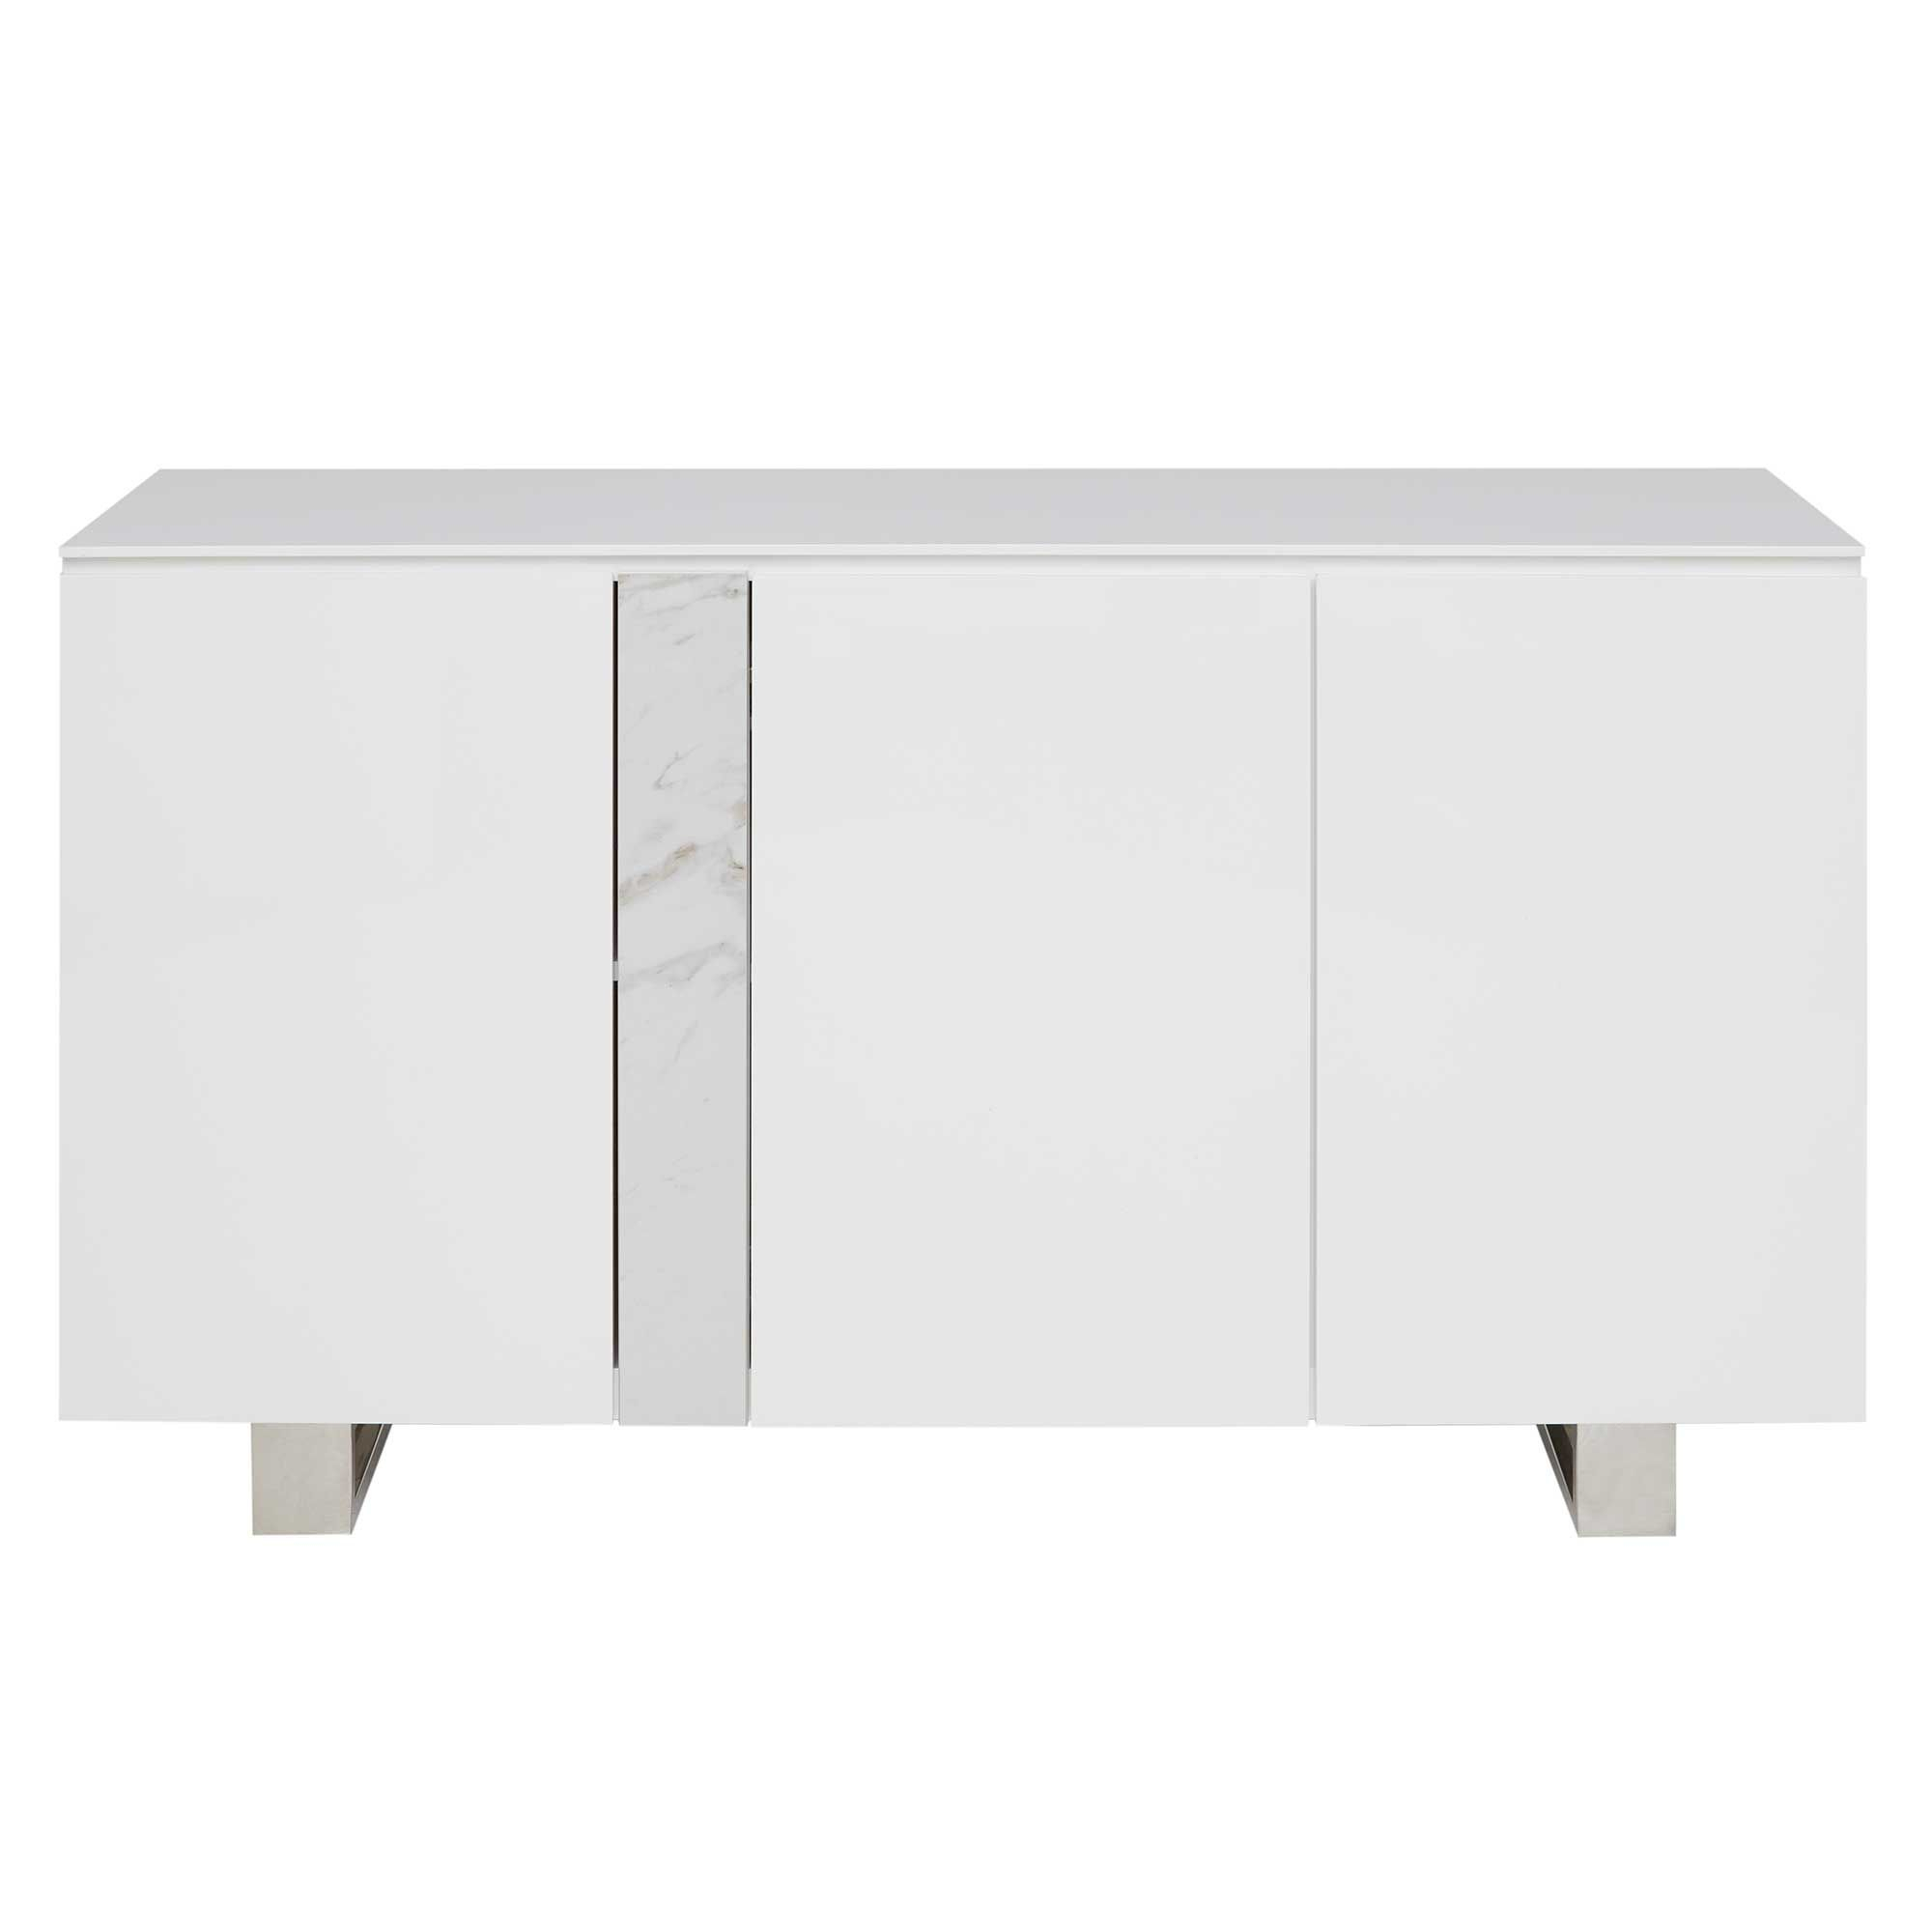 Ginostra 3 Door Sideboard, Gloss White | Sideboards | Dining throughout Thite Sideboards (Image 11 of 30)